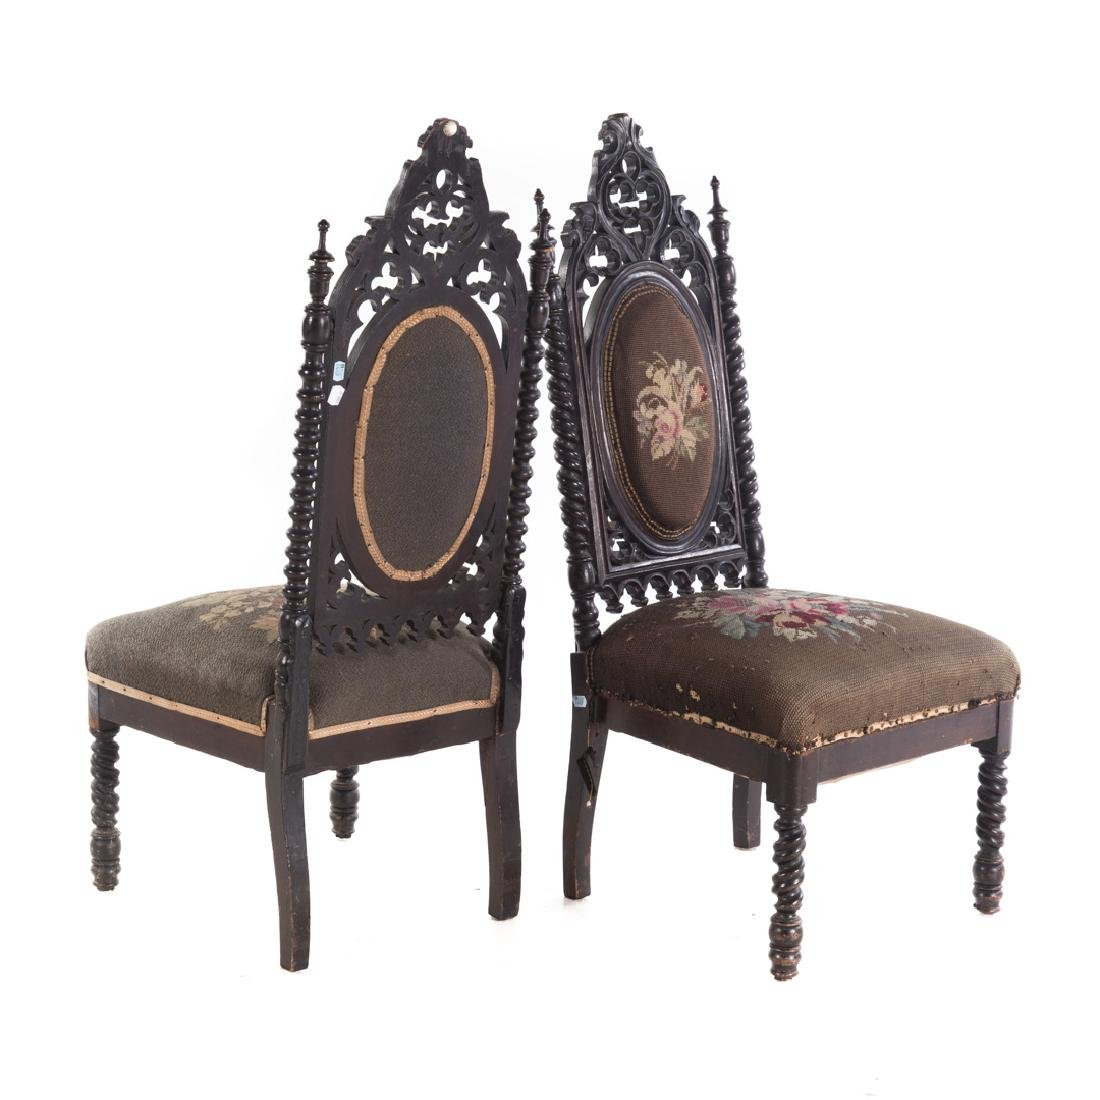 Pair of Gothic Revival walnut side chairs - 3